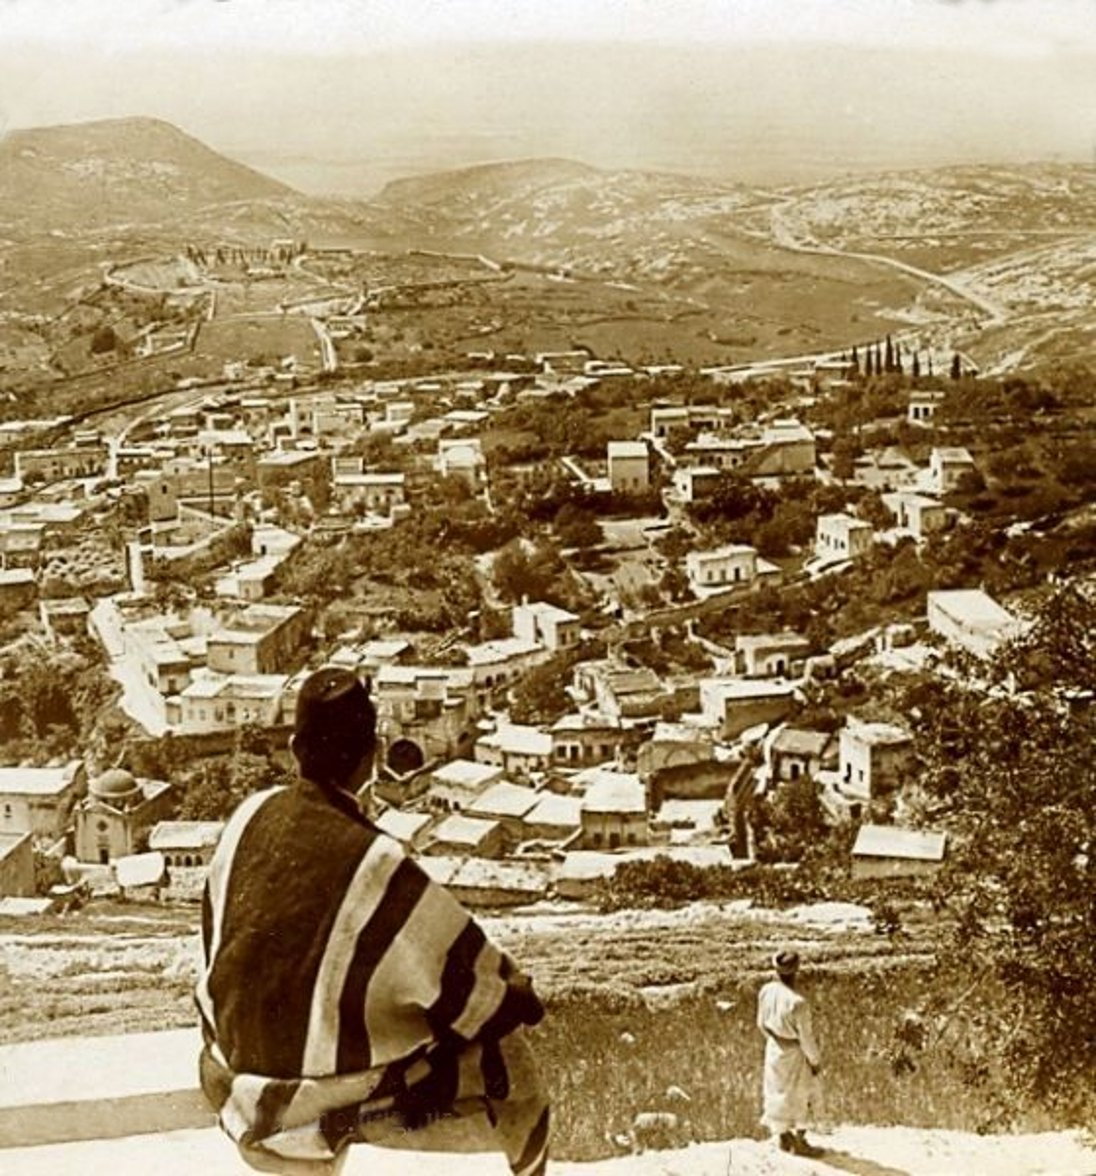 Nazareth - الناصرة : NAZARETH - Late 19th, early 20th c. 55 - circa 1905 - Bird's-eye view (Per Reem Ackall)